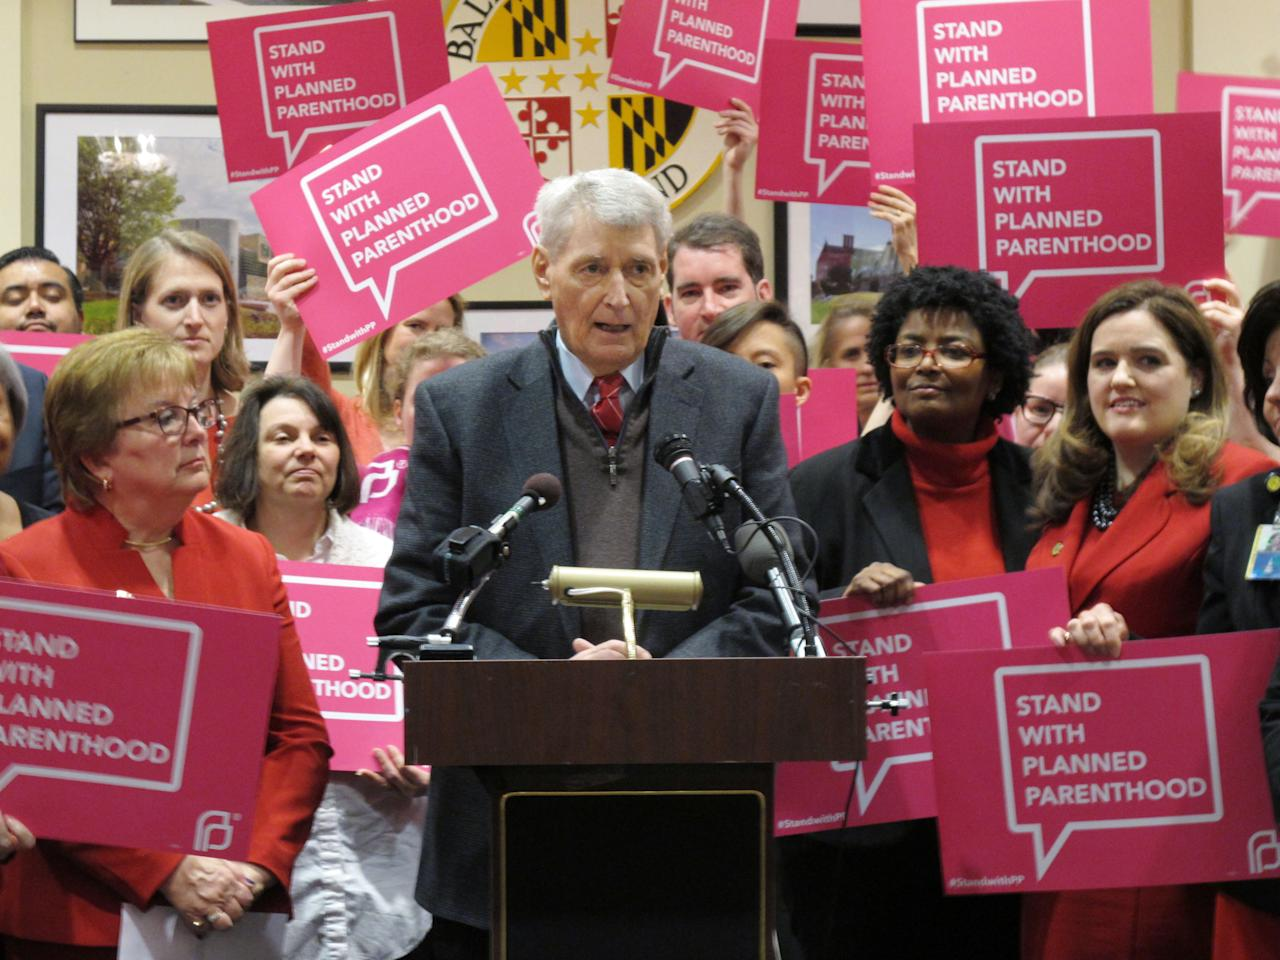 <p> FILE - In this Wednesday, March 8, 2017, file photo, Maryland House Speaker Michael Busch speaks at a news conference in Annapolis, Md., in support of legislation to continue funding for services provided by Planned Parenthood. Democratic lawmakers in some states including Maryland are pressing ahead with efforts to protect birth control access, Planned Parenthood funding and abortion coverage in case they are jeopardized in the future. (AP Photo/Brian Witte, File) </p>